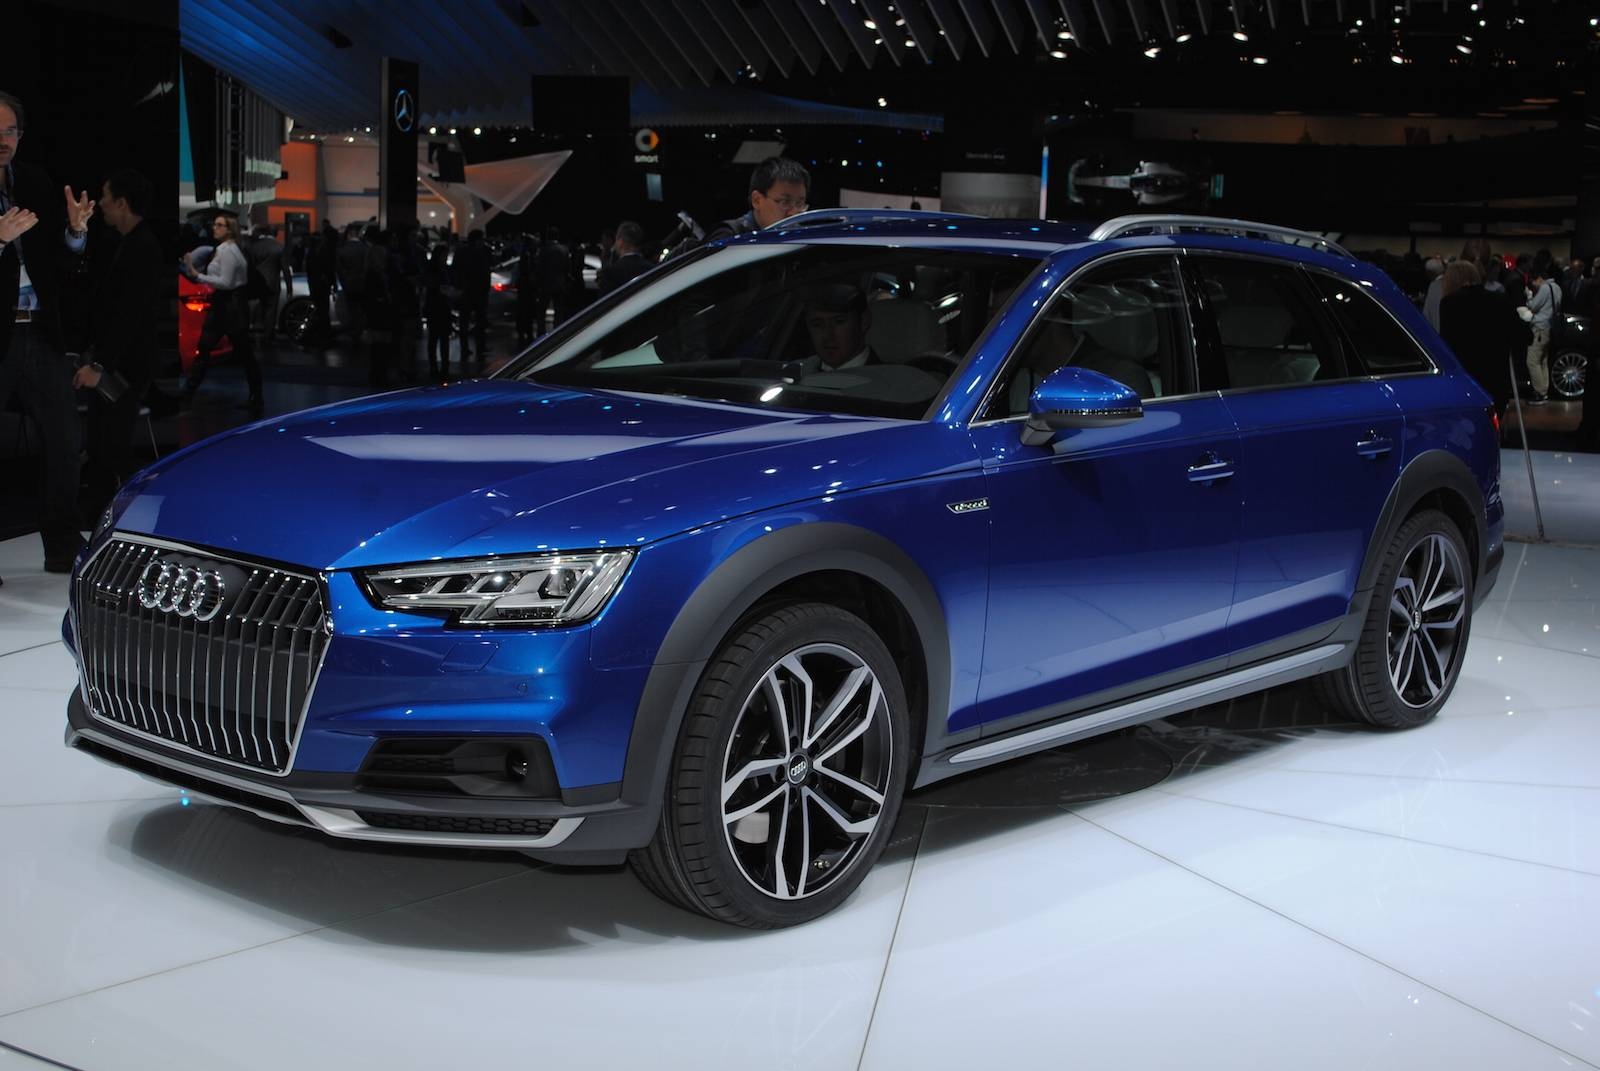 2016 audi a4 allroad quattro unveiled at detroit motor show. Black Bedroom Furniture Sets. Home Design Ideas